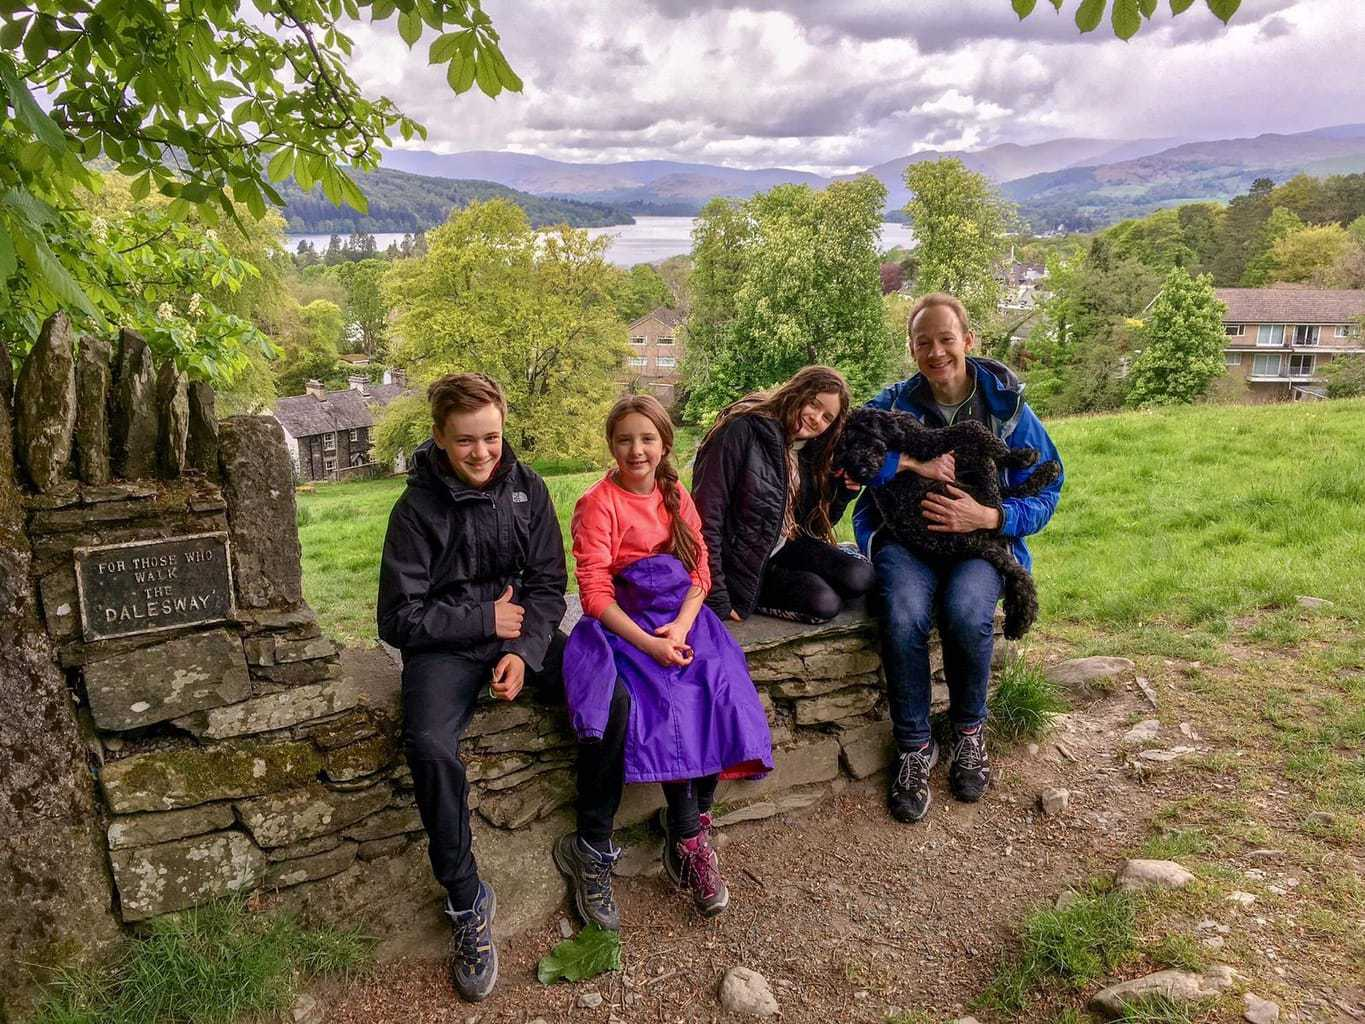 Braithwaite Fold Camping and Caravanning Club Site – Lake District Camp Site